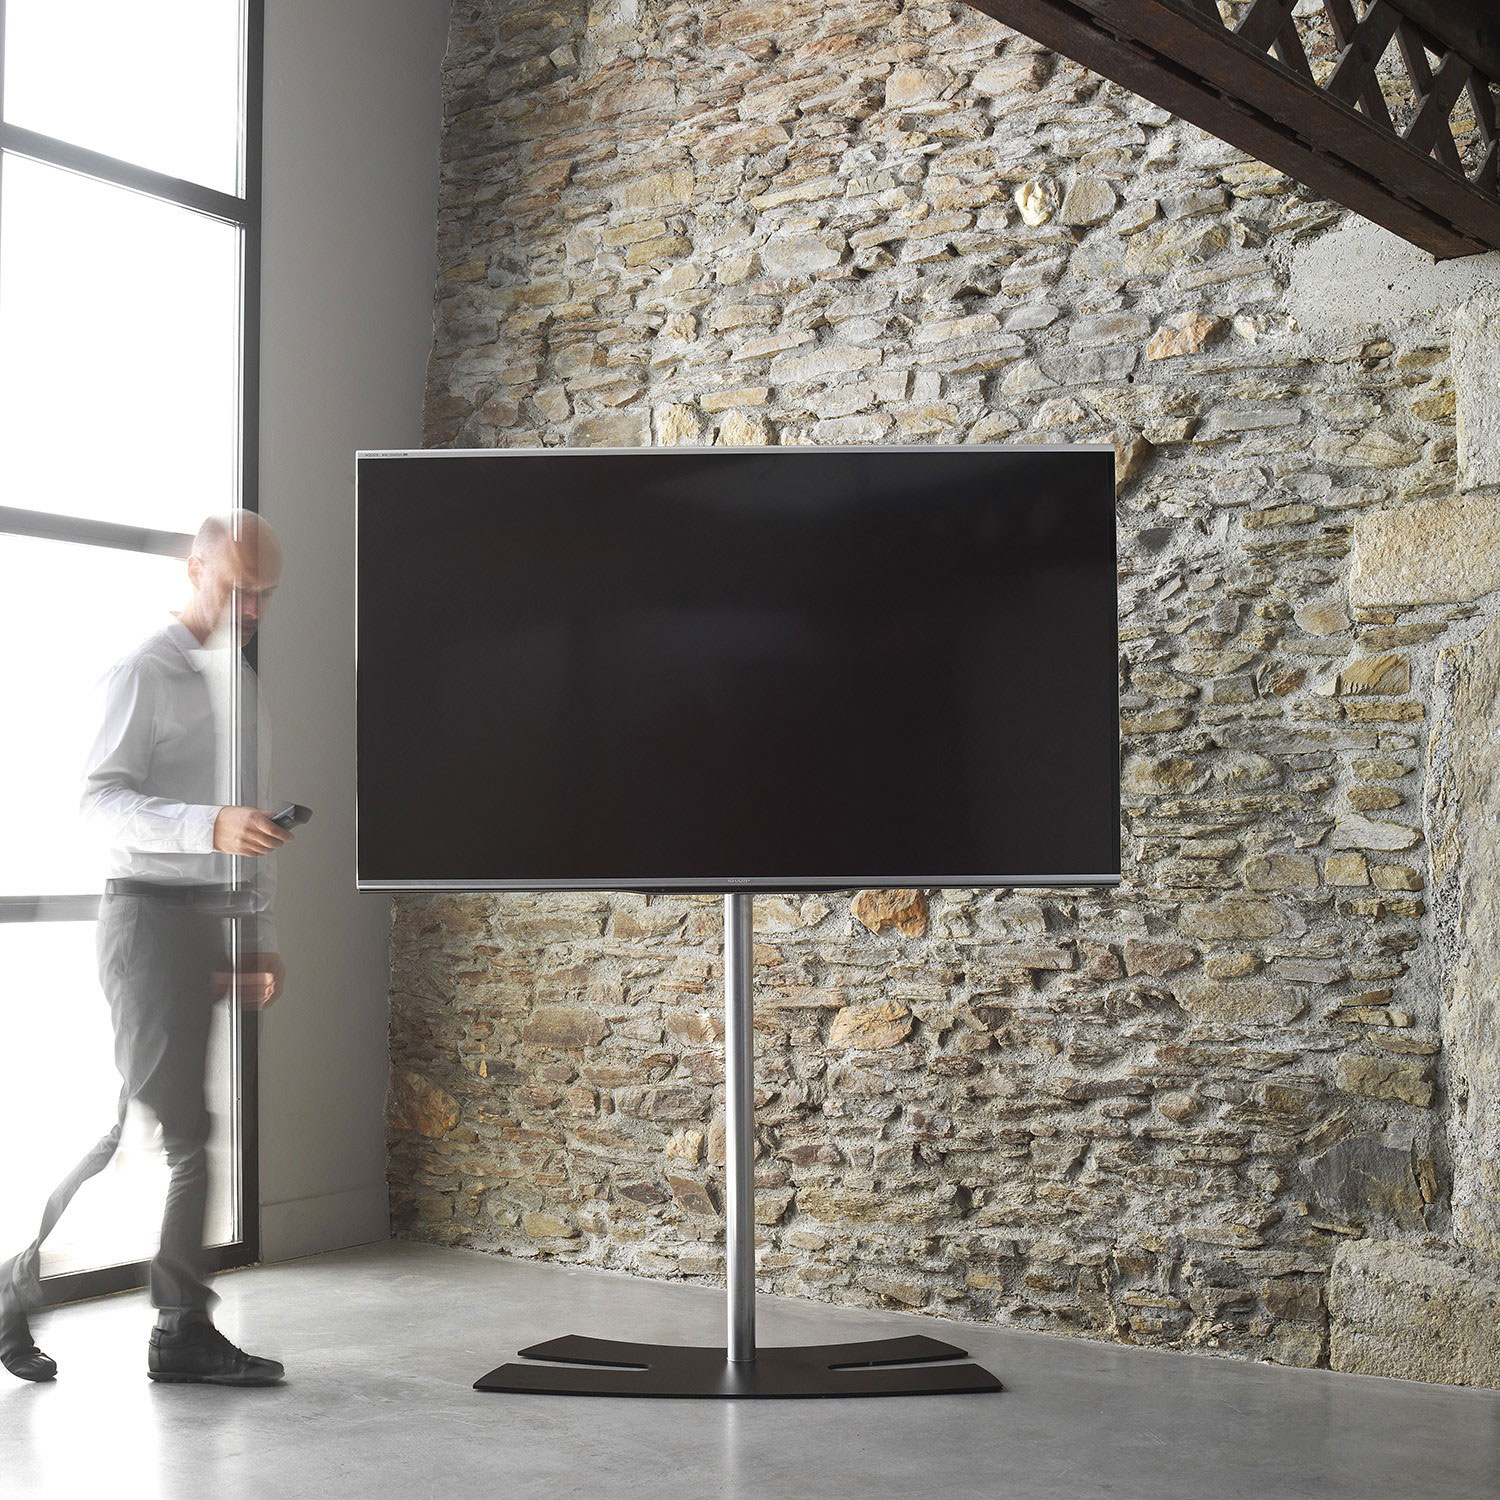 Erard lux up 1600xl blanc support mural tv erard group sur - Bras telescopique tv ...